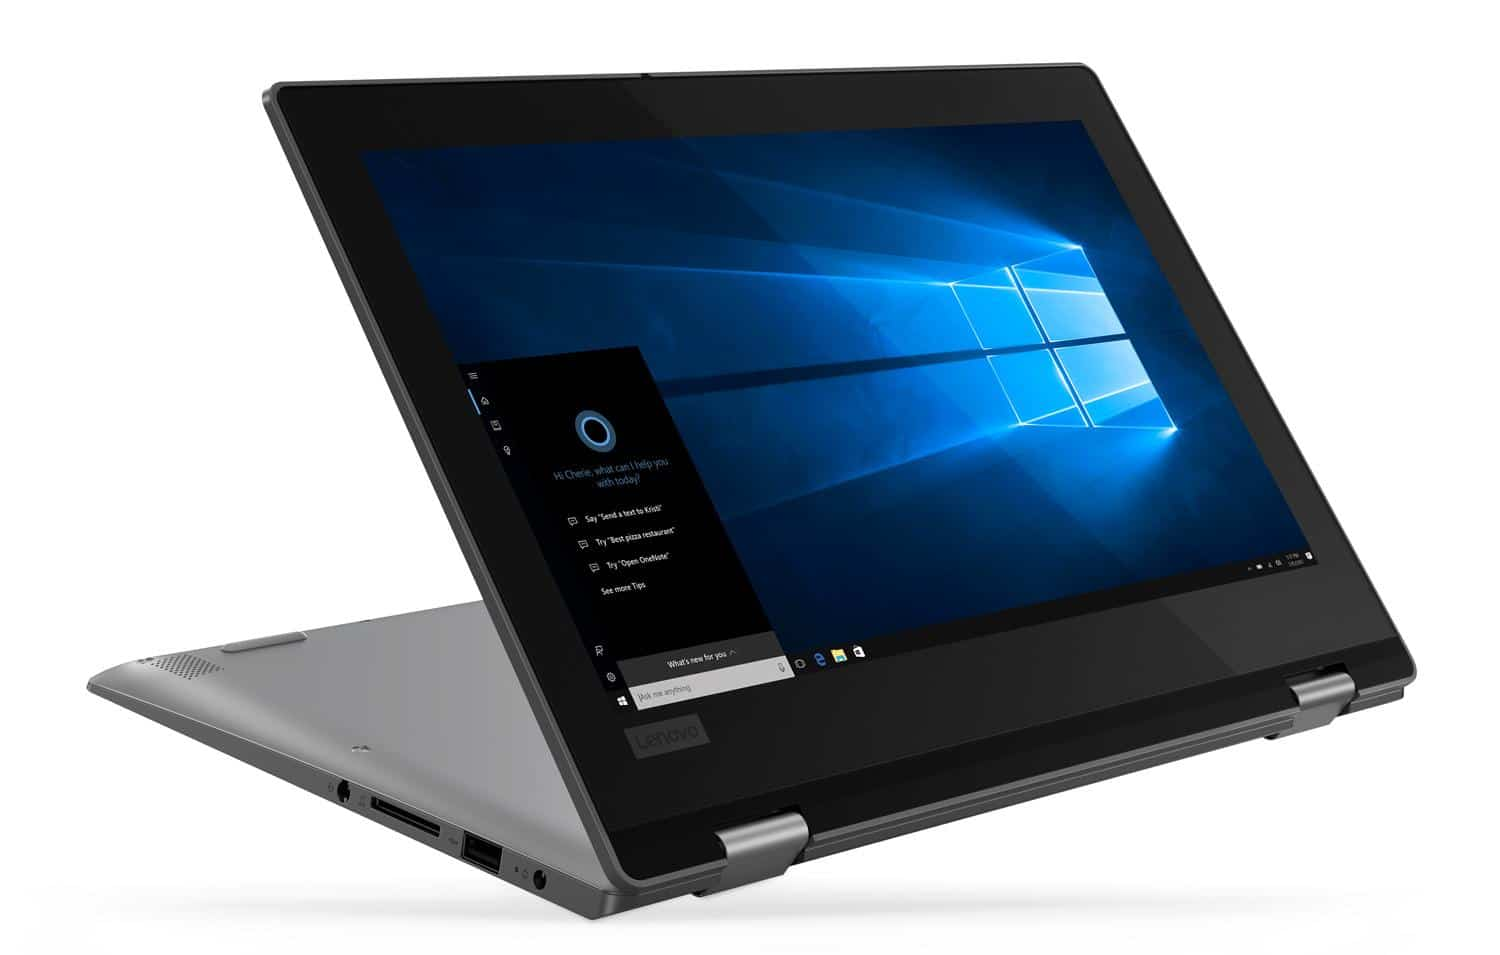 Lenovo Yoga 330-11IGM, 11 pouces Tablette tactile Gemini Lake 128Go (371€)